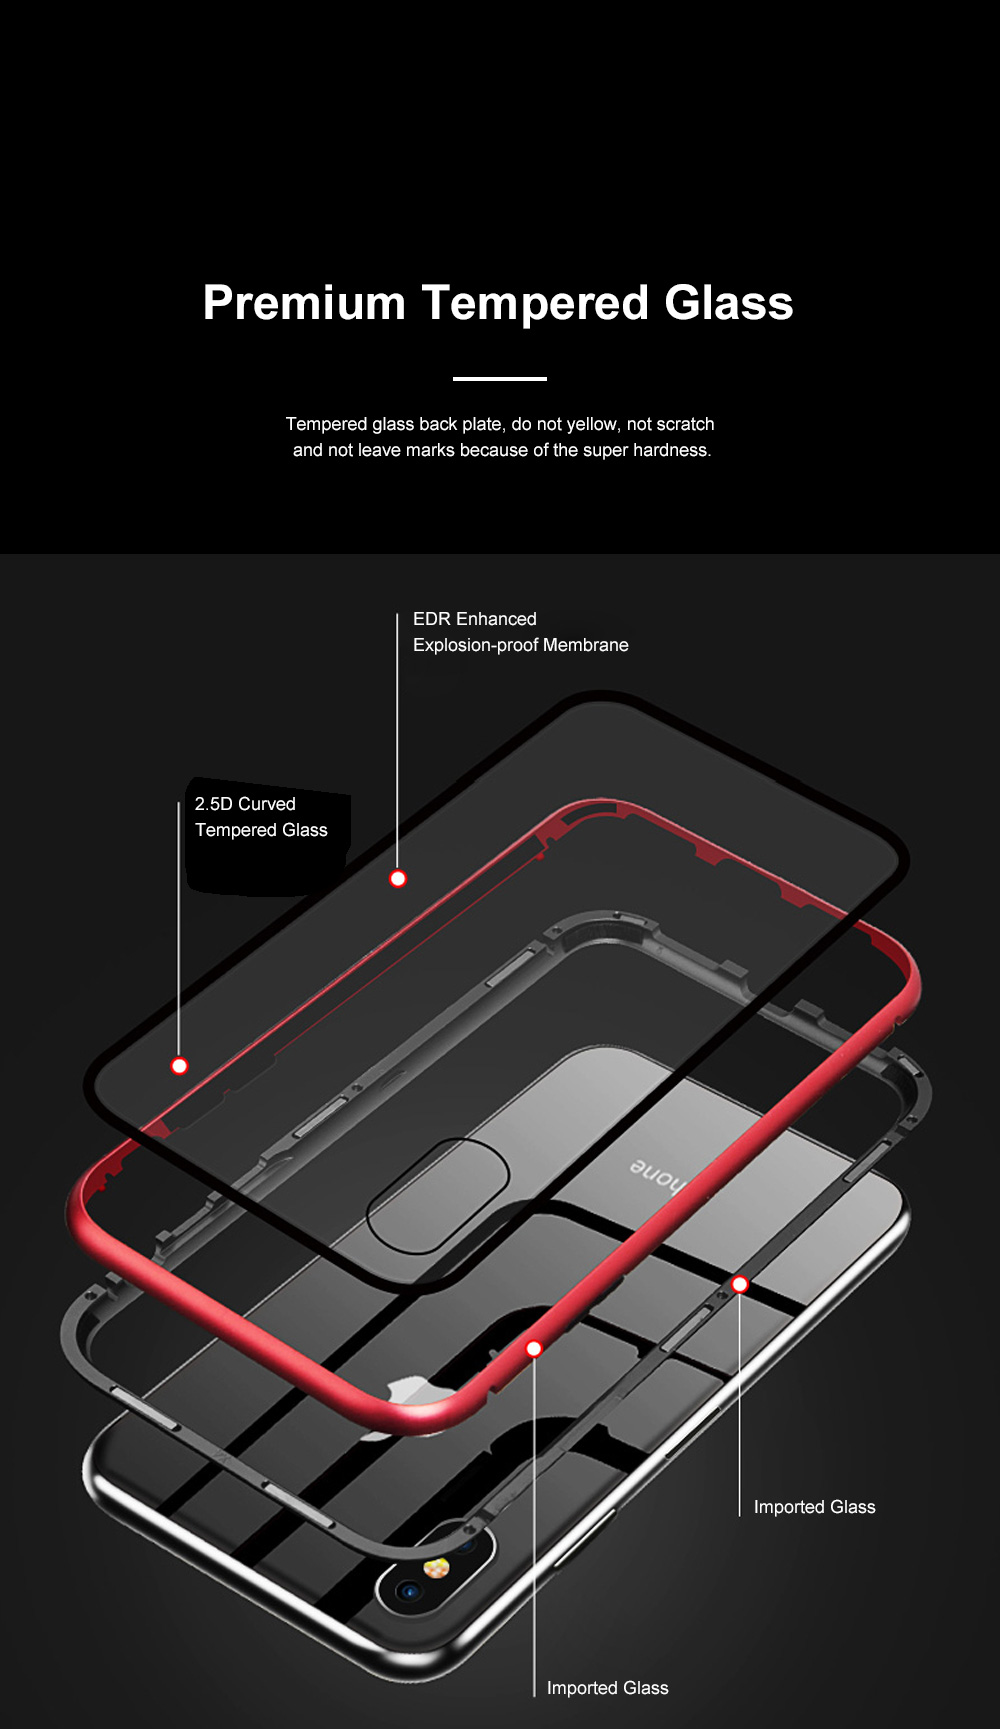 Magnetic Adsorption Phone Case Double-Sided Tempered Glass Protection Shell Compatible for iPhone 6 7 8 11 XS Max & XS 2